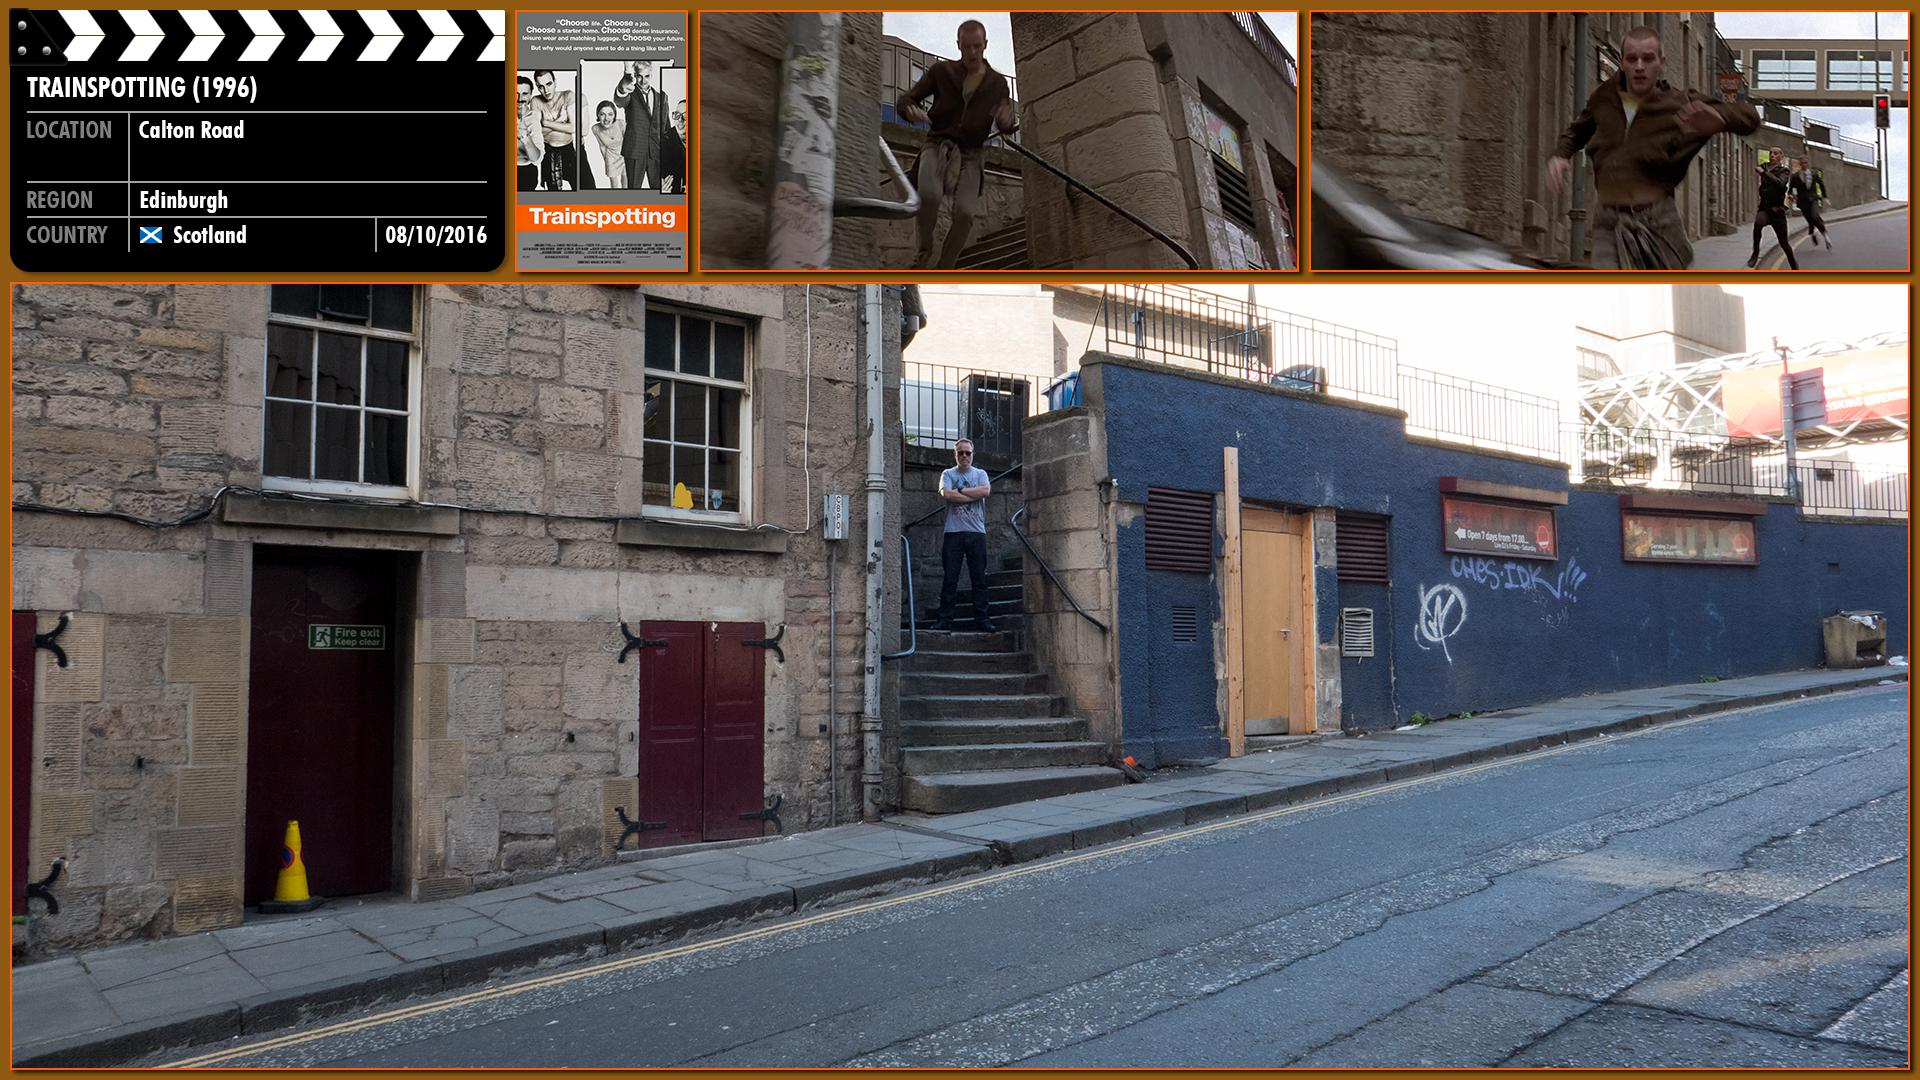 Filming location photo for Trainspotting (1996) 5 of 11